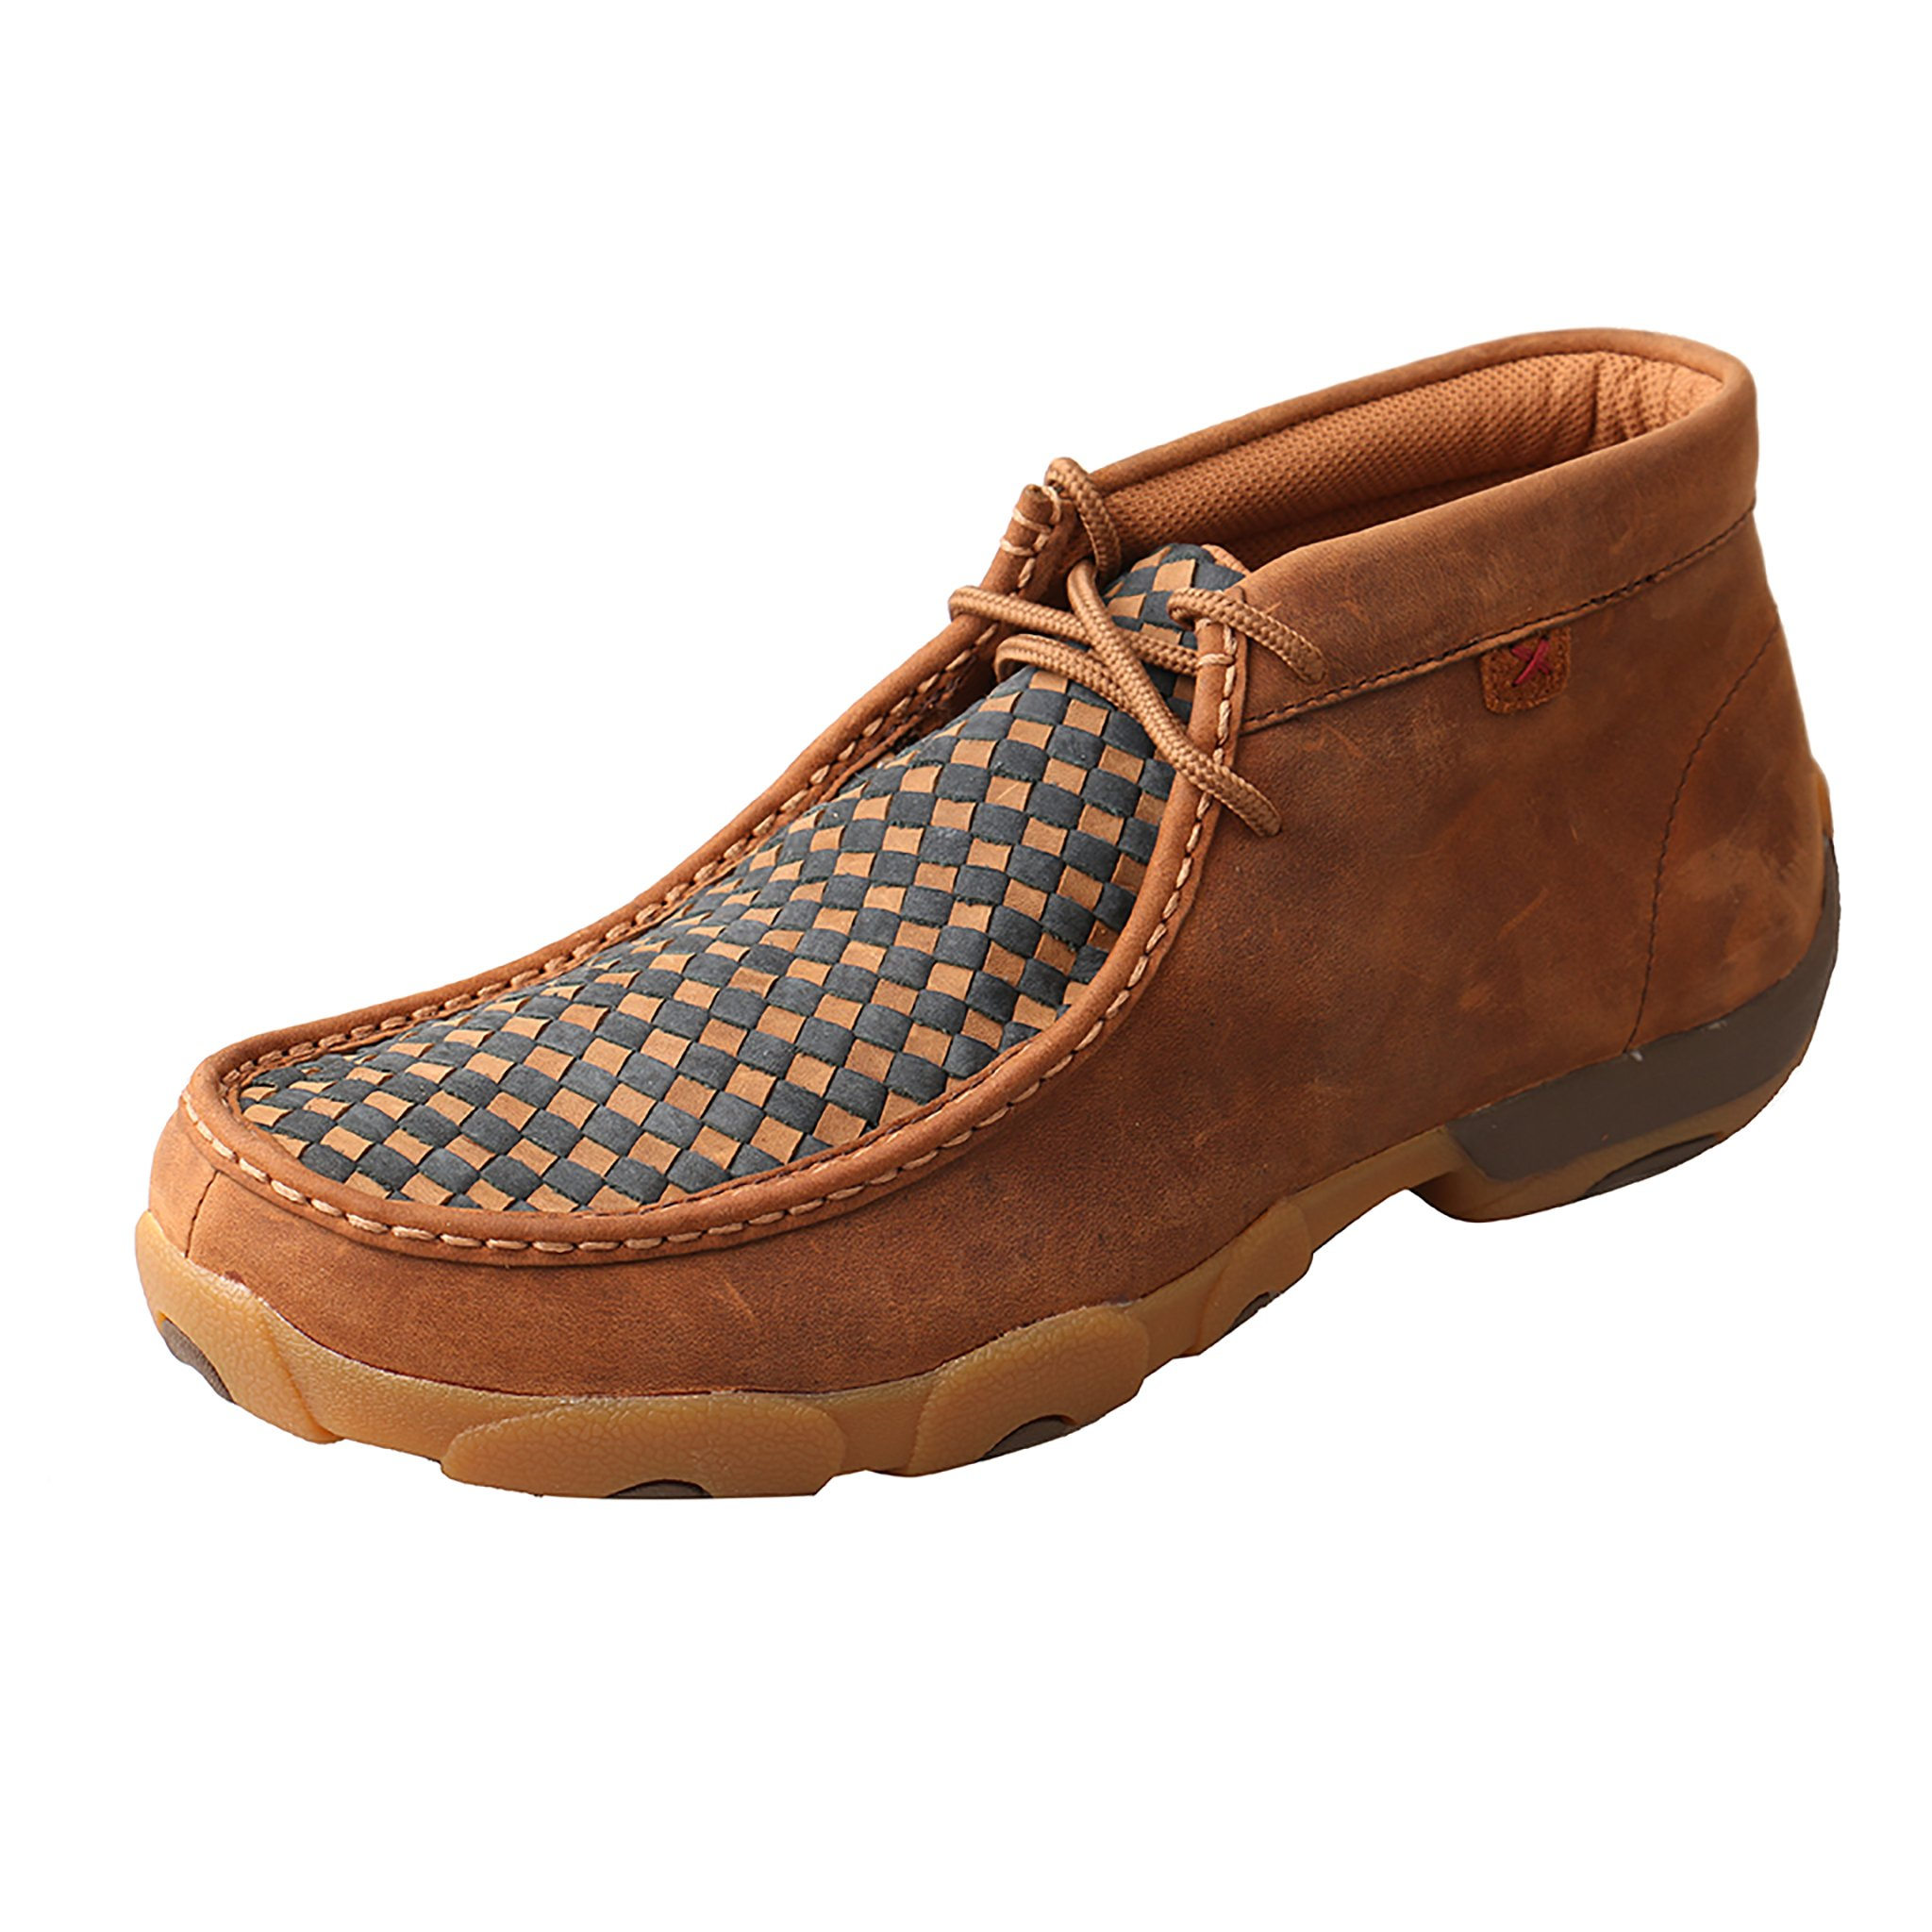 Twisted X Men's Leather Lace-Up Rubber Sole Driving Moccasins - Oiled Saddle